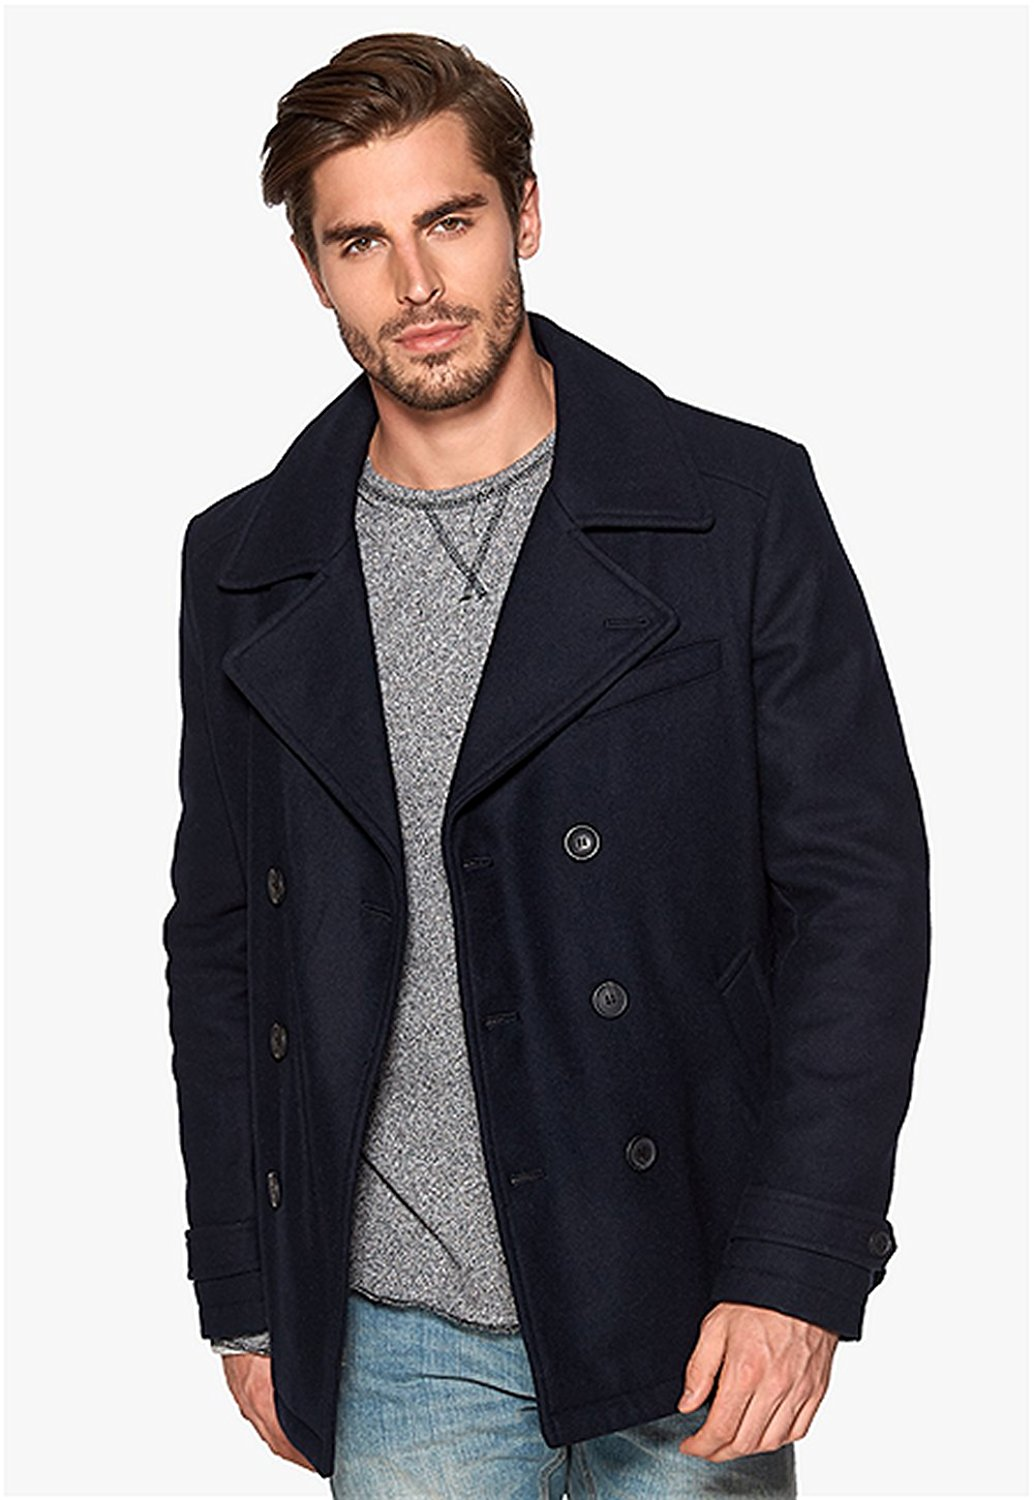 fidelity men Mens outerwear (fc) browse by all men new sort by featured best selling alphabetically, a-z alphabetically, z-a price, low to high price, high to low date, new to old date, old to new.